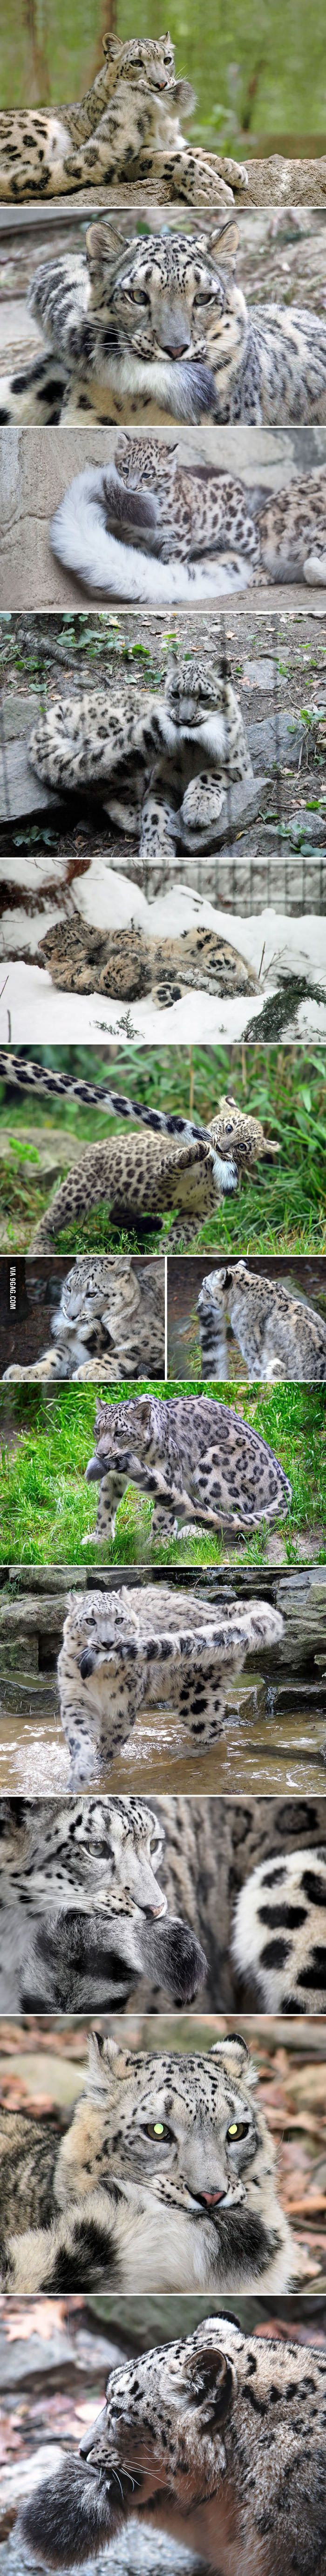 Viral pictures of the day: If you are having a bad day, just look at these pictures of snow leopards nomming on their fluffy tails!